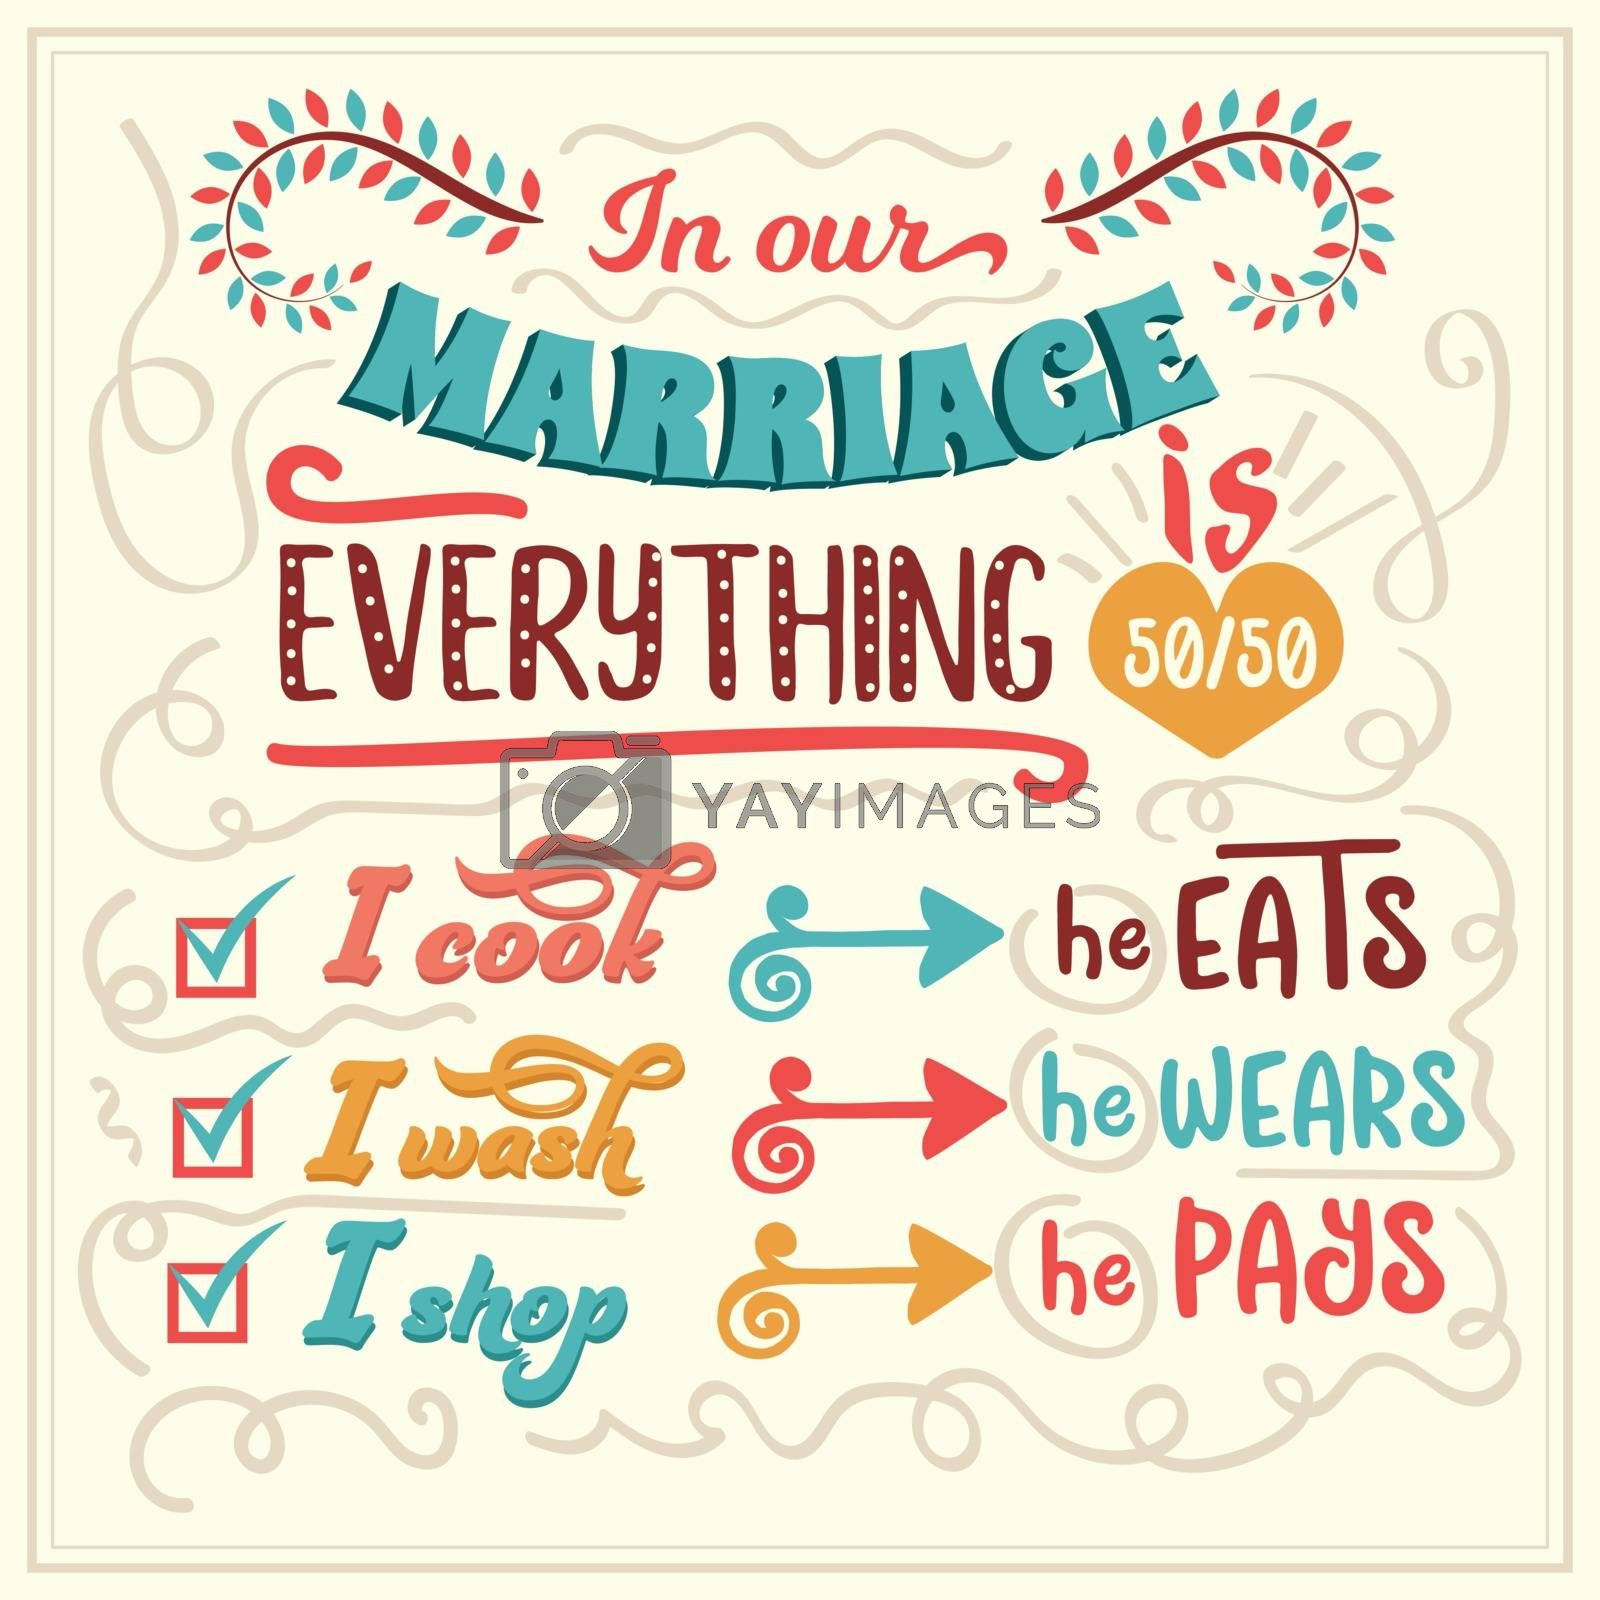 In our marriage everything is 50/50. Funny inspirational quote. Hand drawn illustration with hand-lettering and decoration elements. Drawing for prints on t-shirts and bags, stationary or poster.